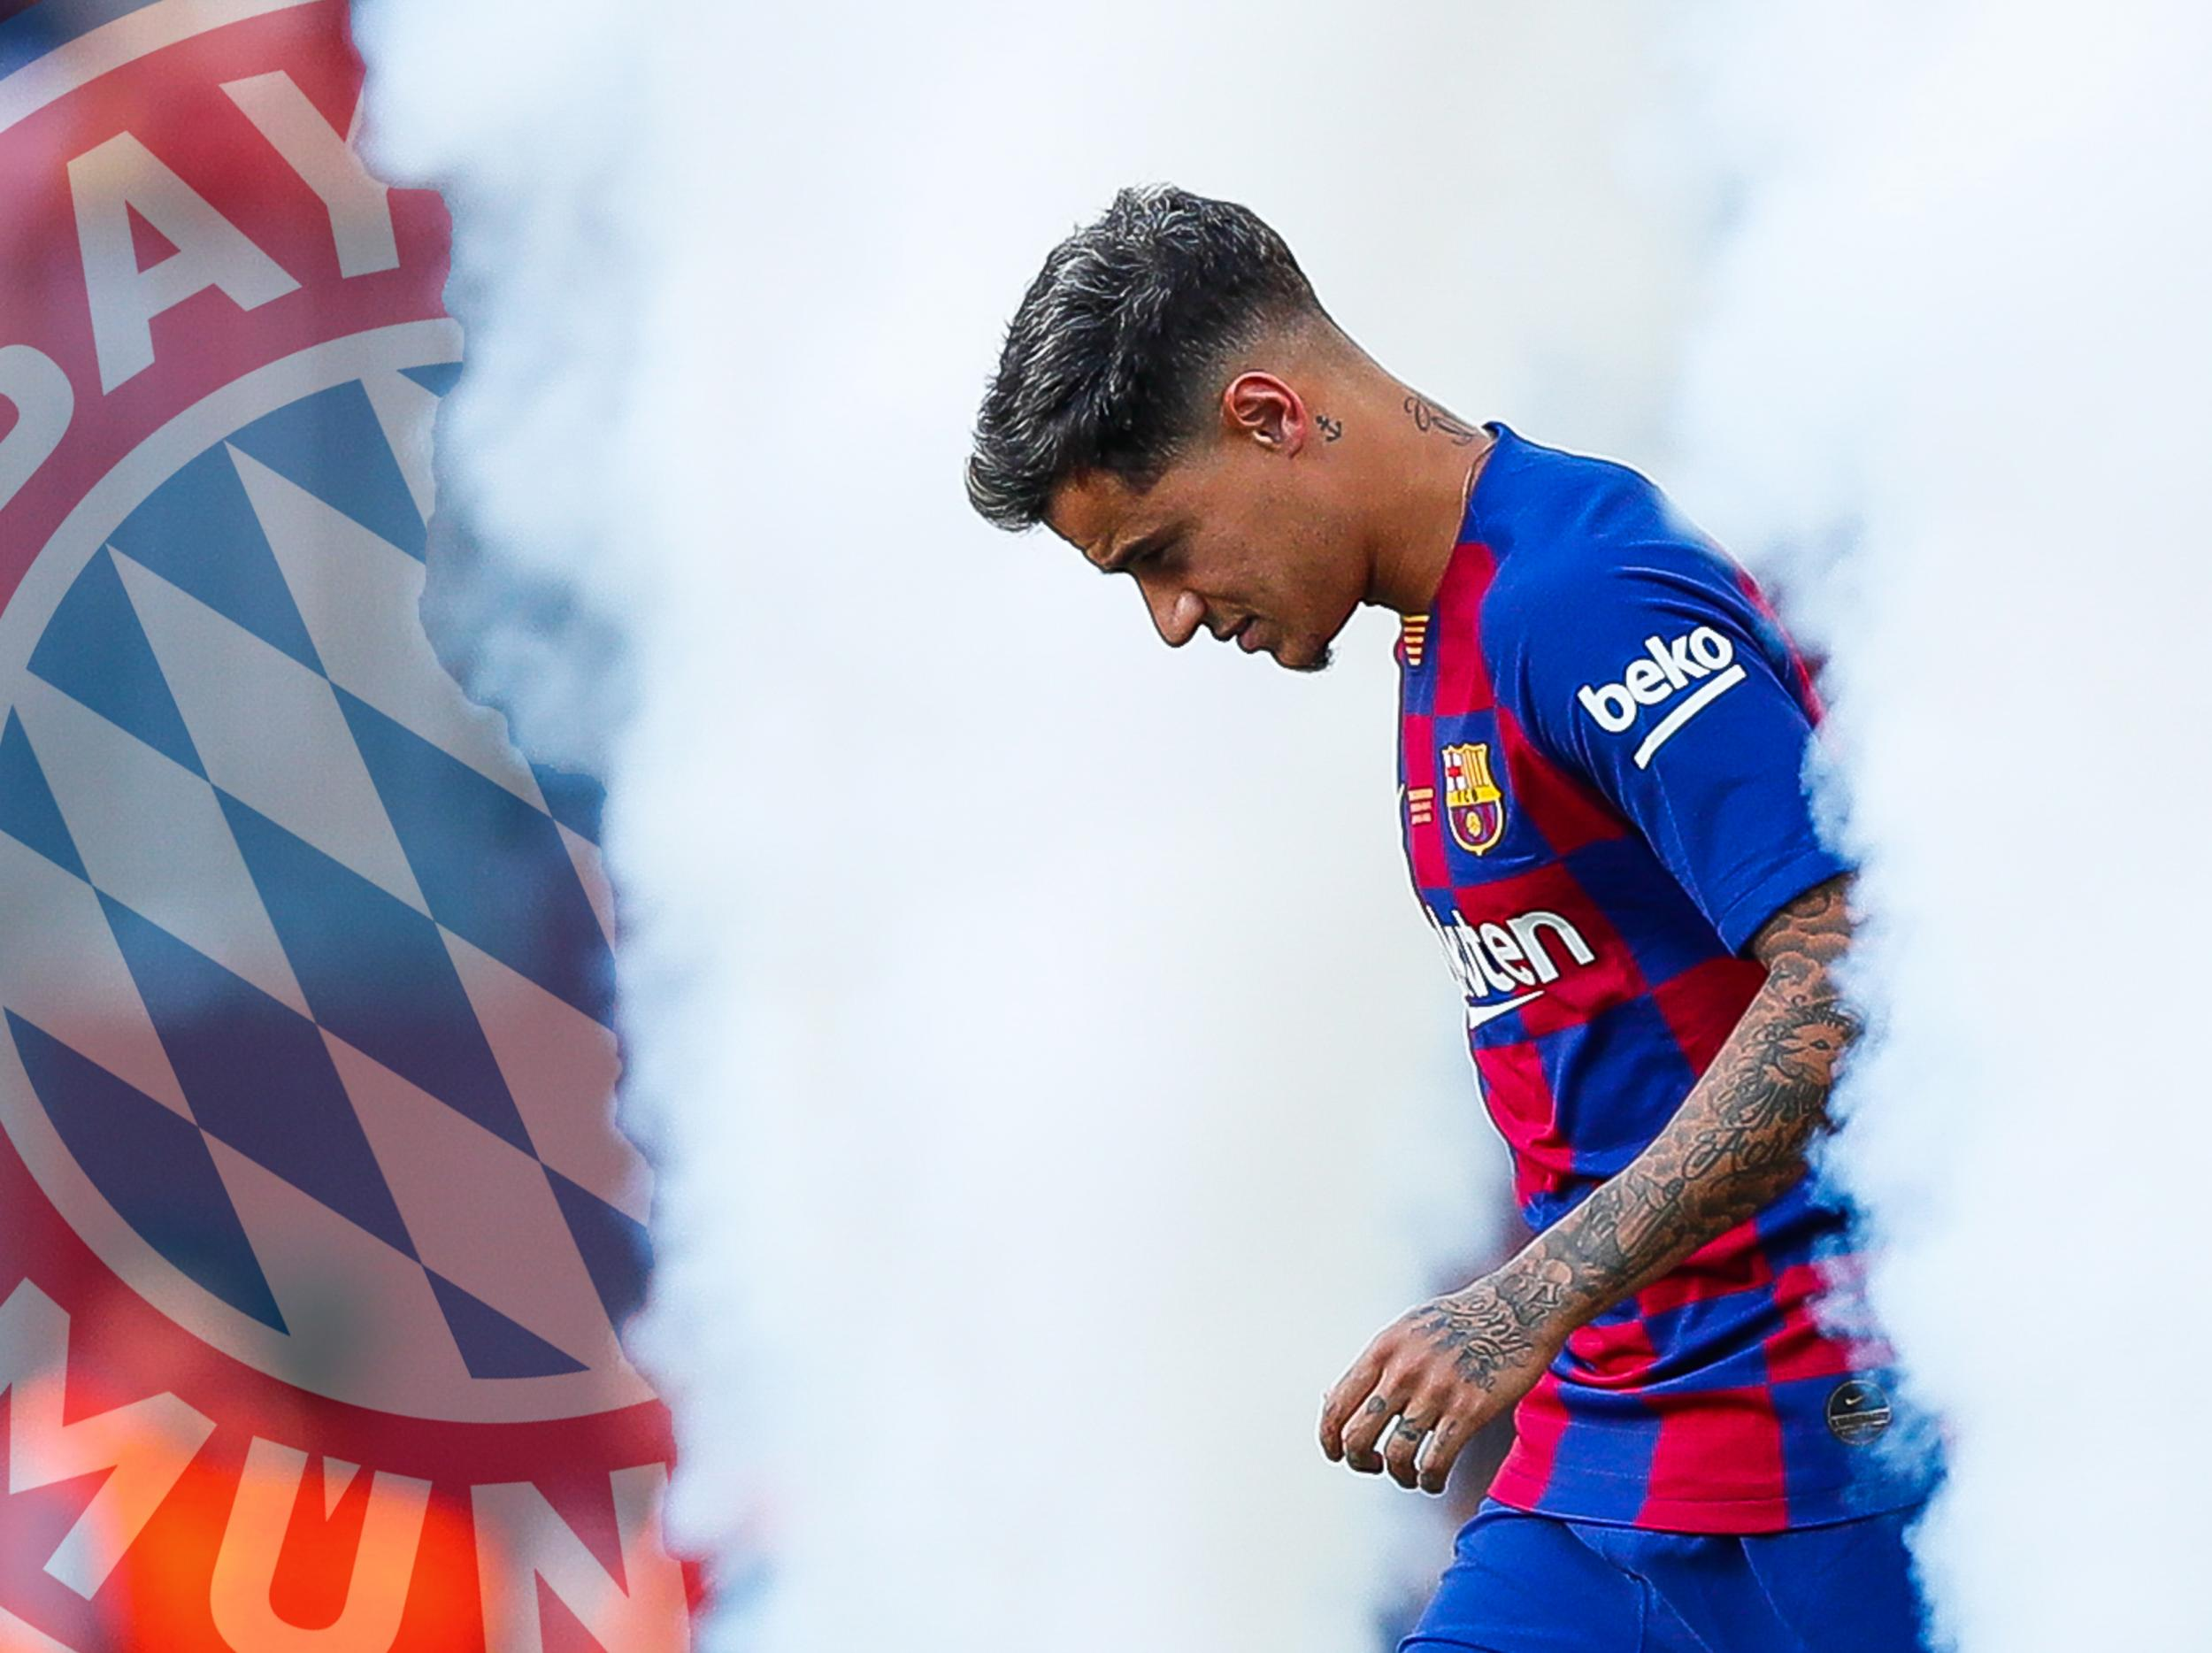 Philippe Coutinho: Barcelona midfielder joins Bayern Munich on loan with £110m option to buy